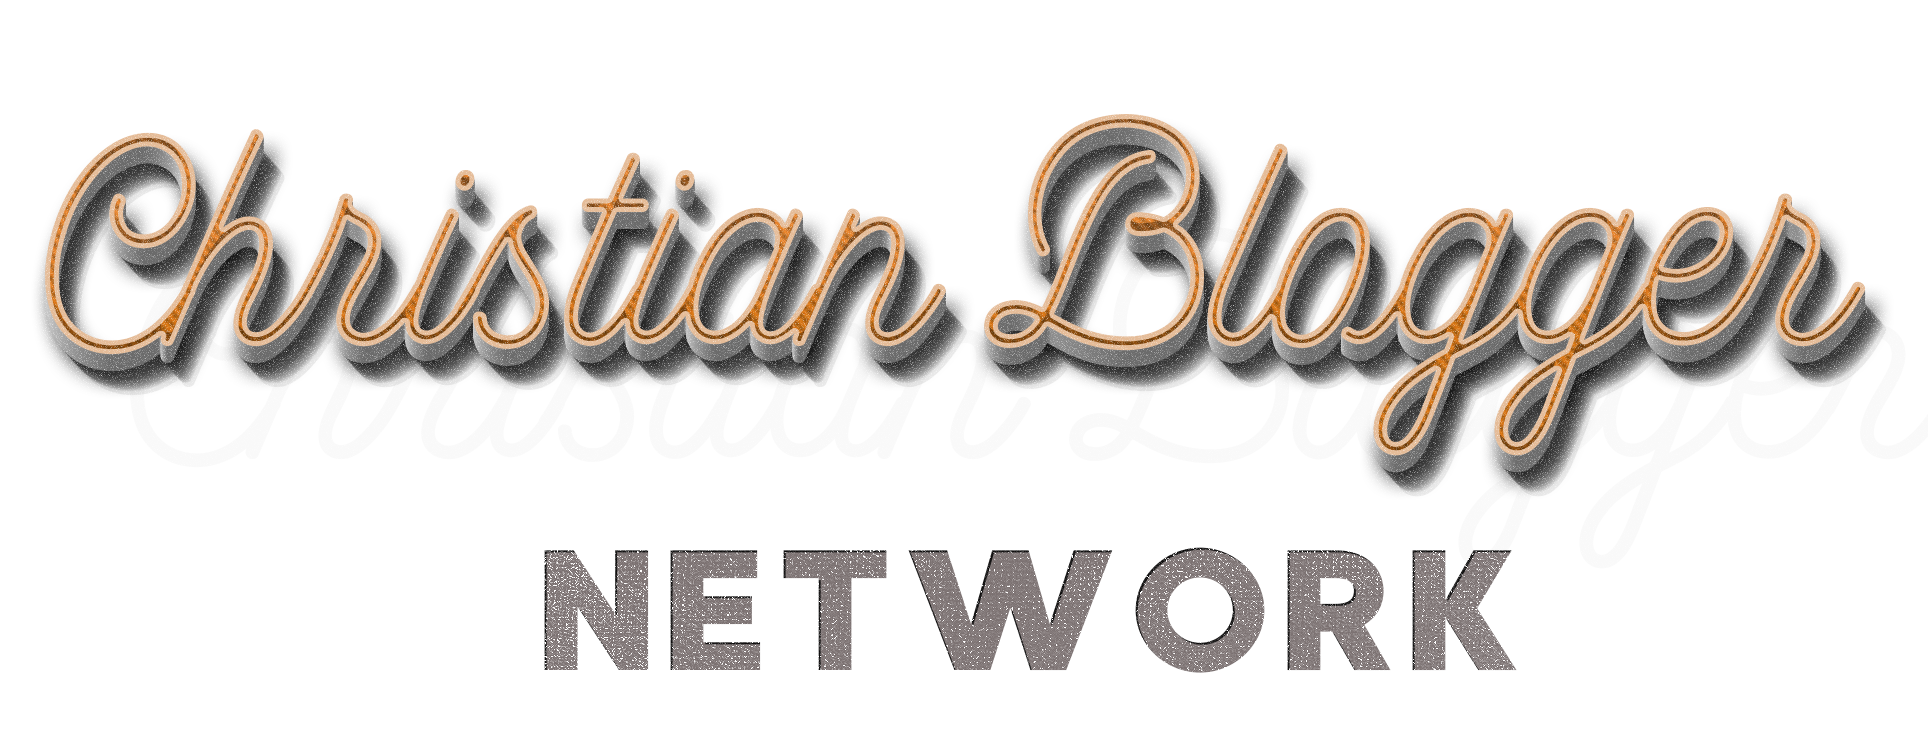 Christian Blogger Network